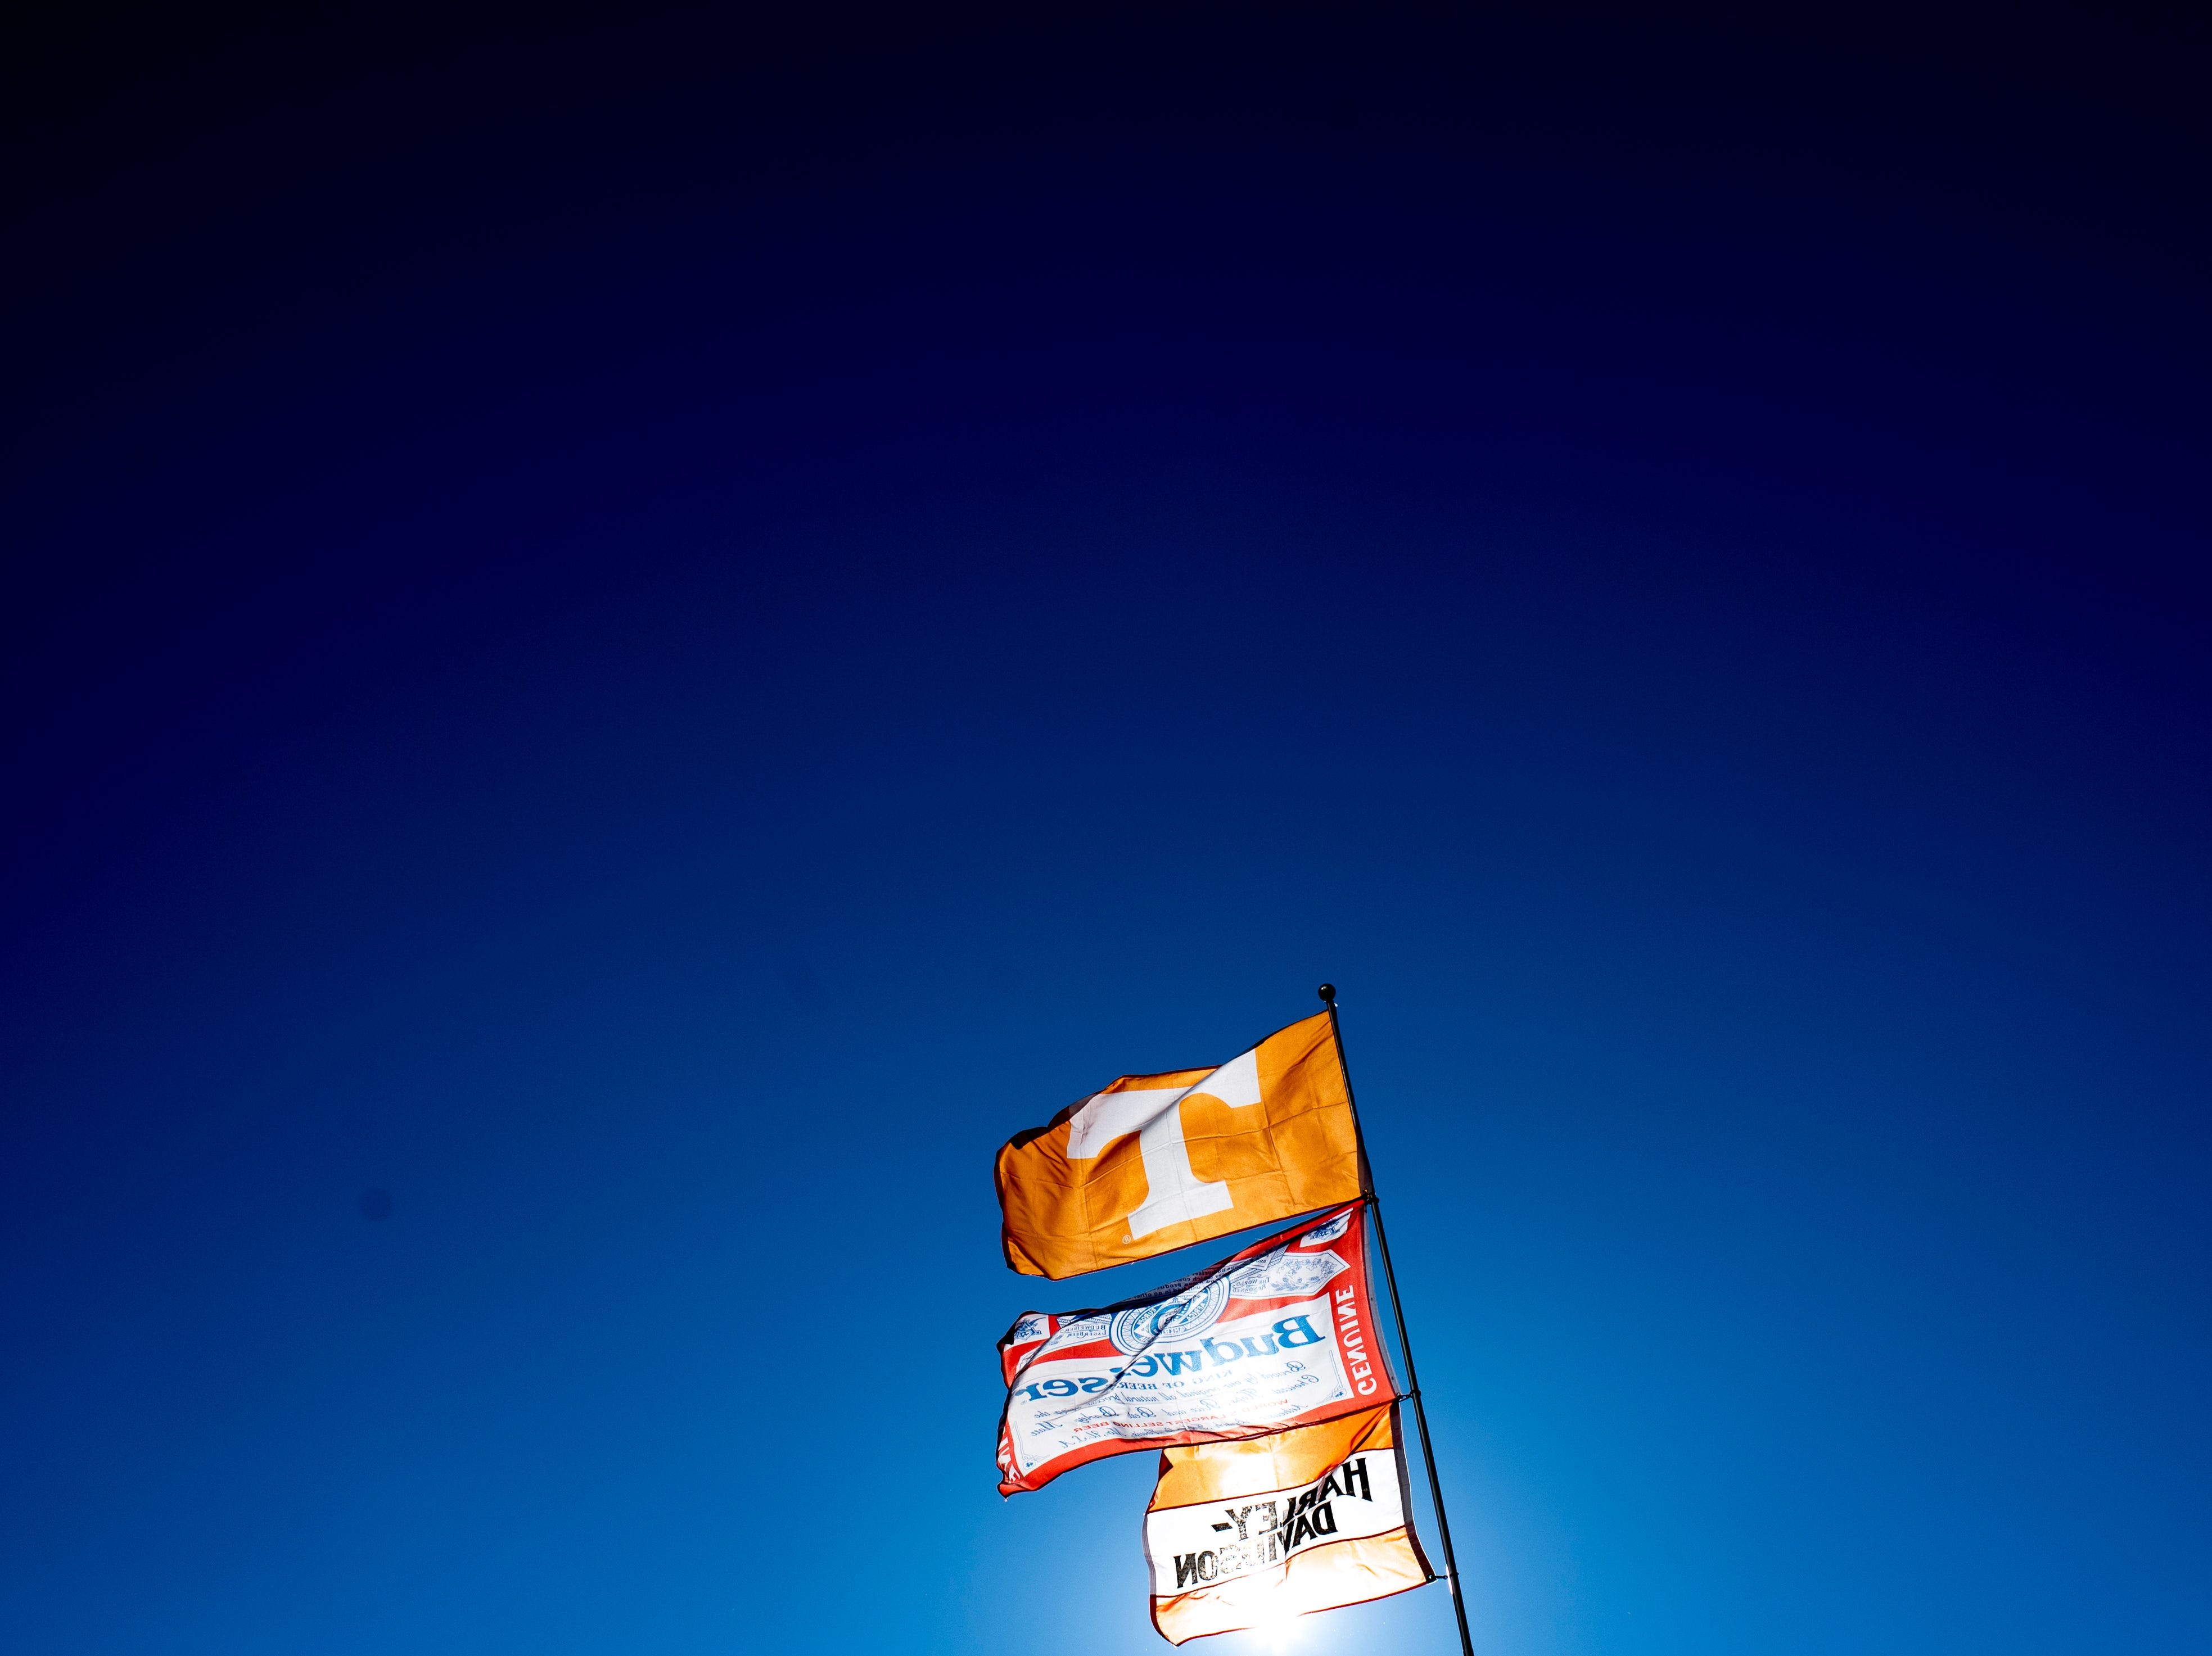 A Tennessee flag flies above the tailgates during a game between Tennessee and Kentucky at Neyland Stadium in Knoxville, Tennessee on Saturday, November 10, 2018.